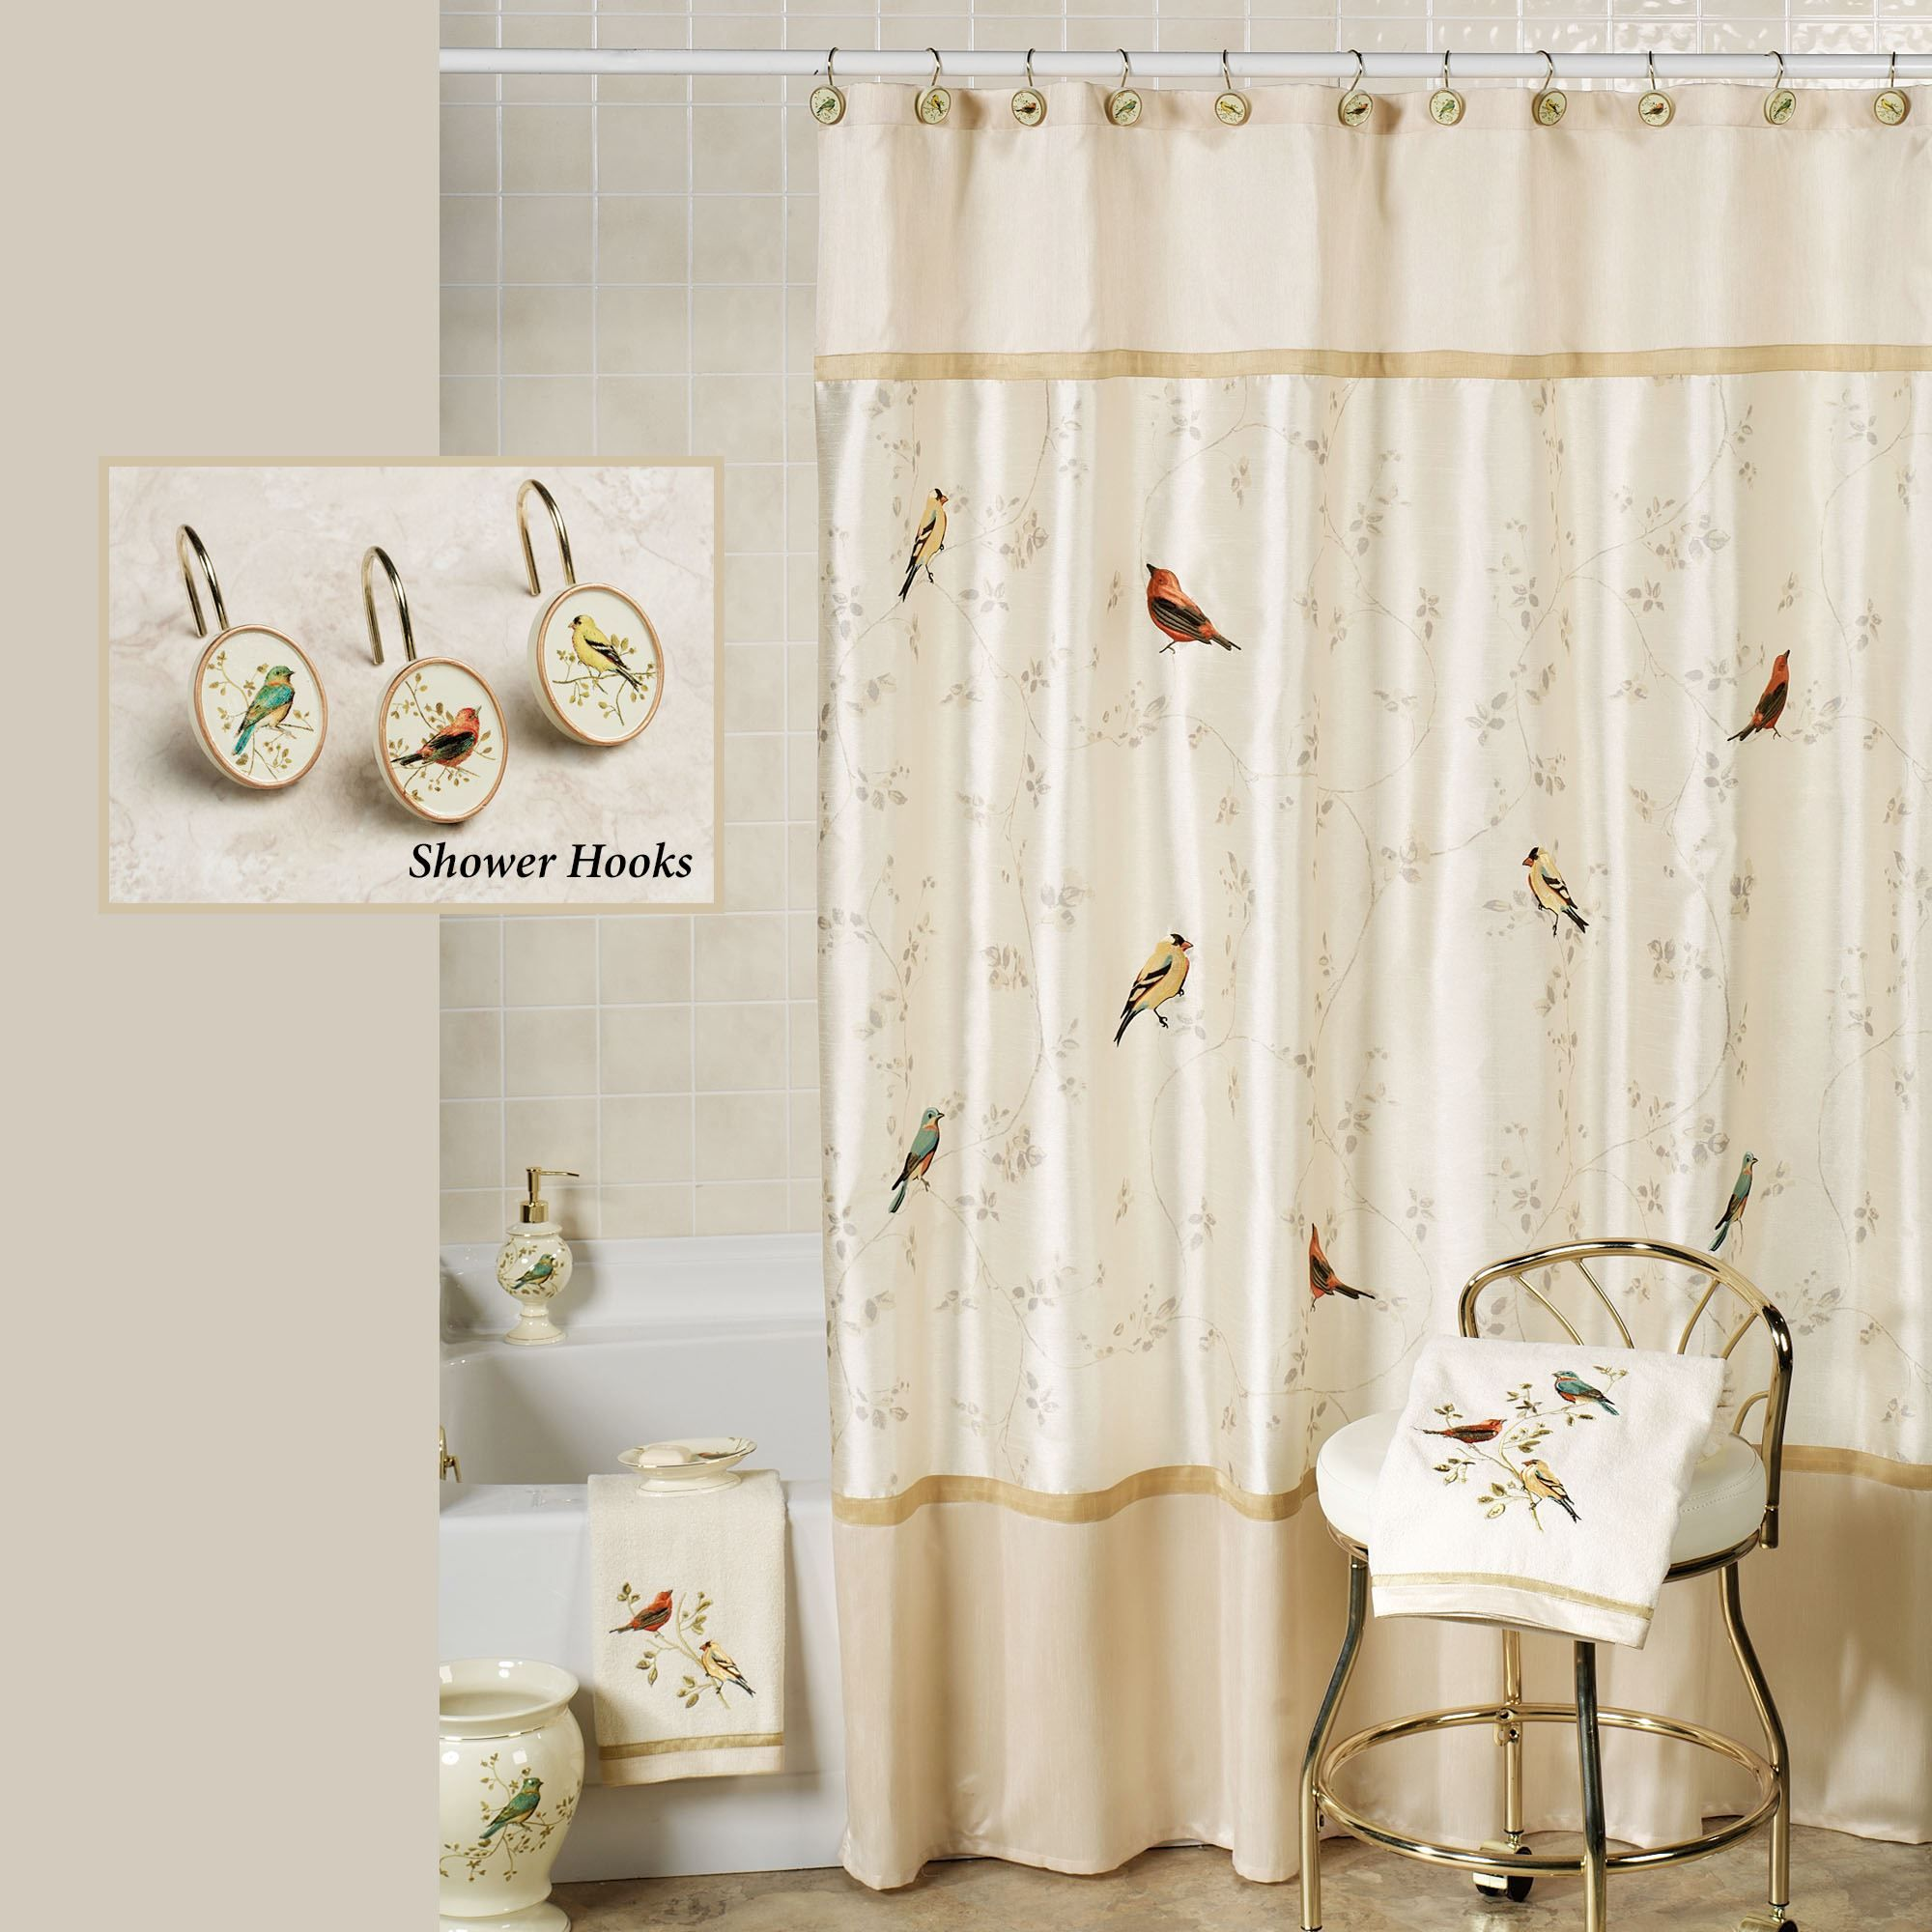 Shower Curtain Ideas Diy Cool Designs Rod